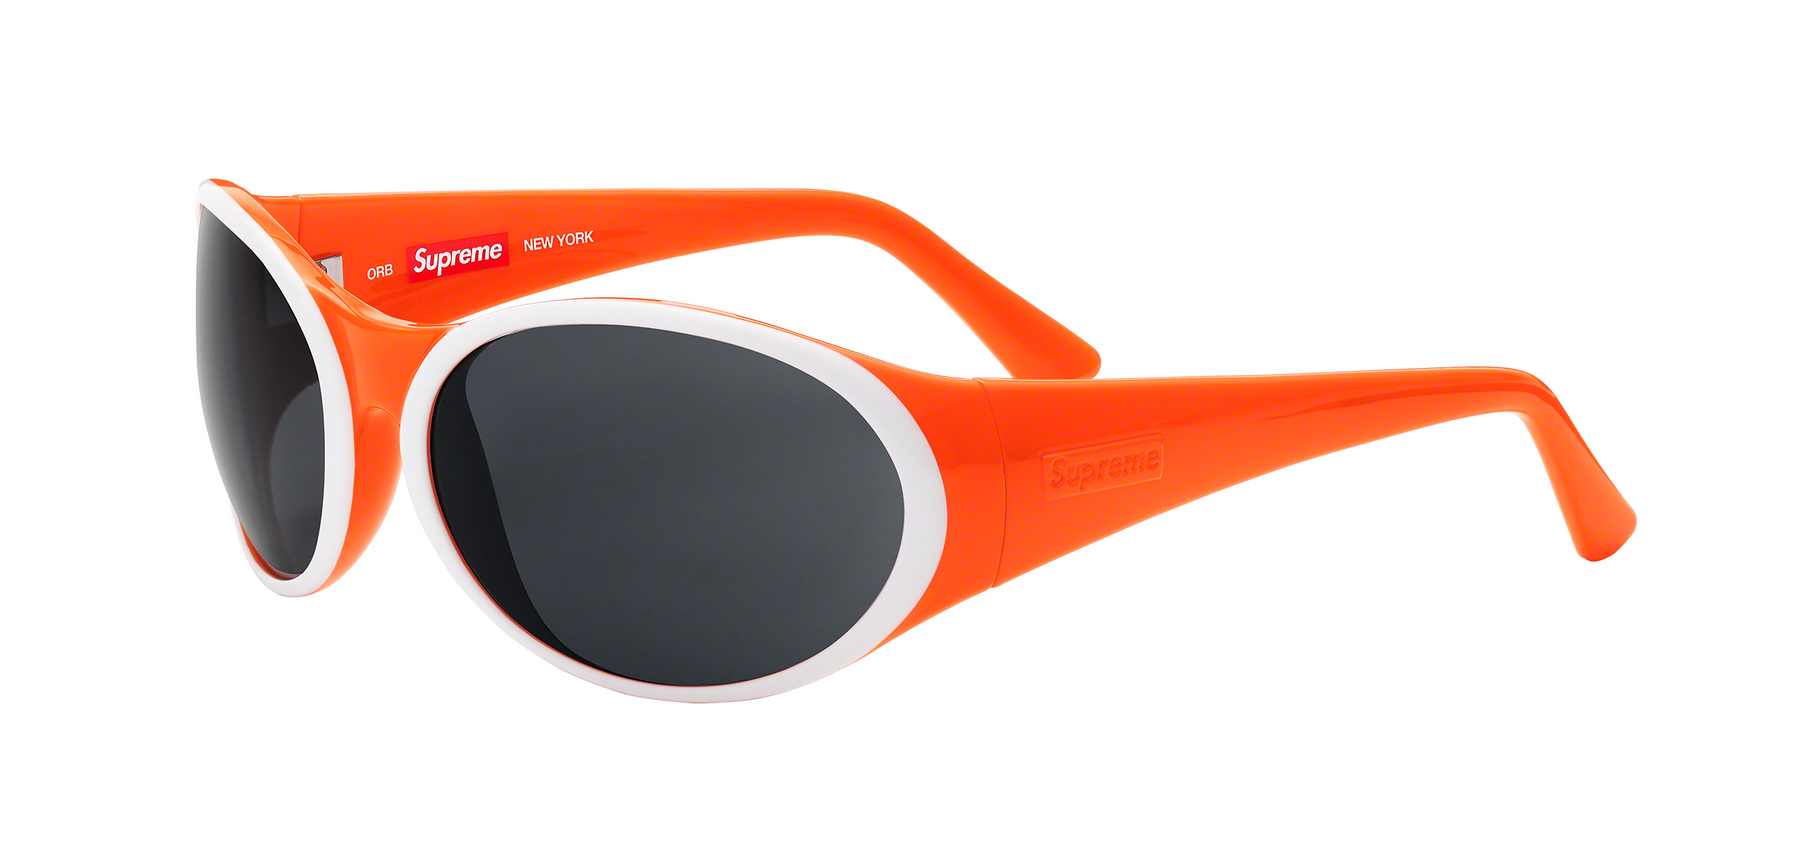 supreme-19ss-sunglasses-release-20190601-week14